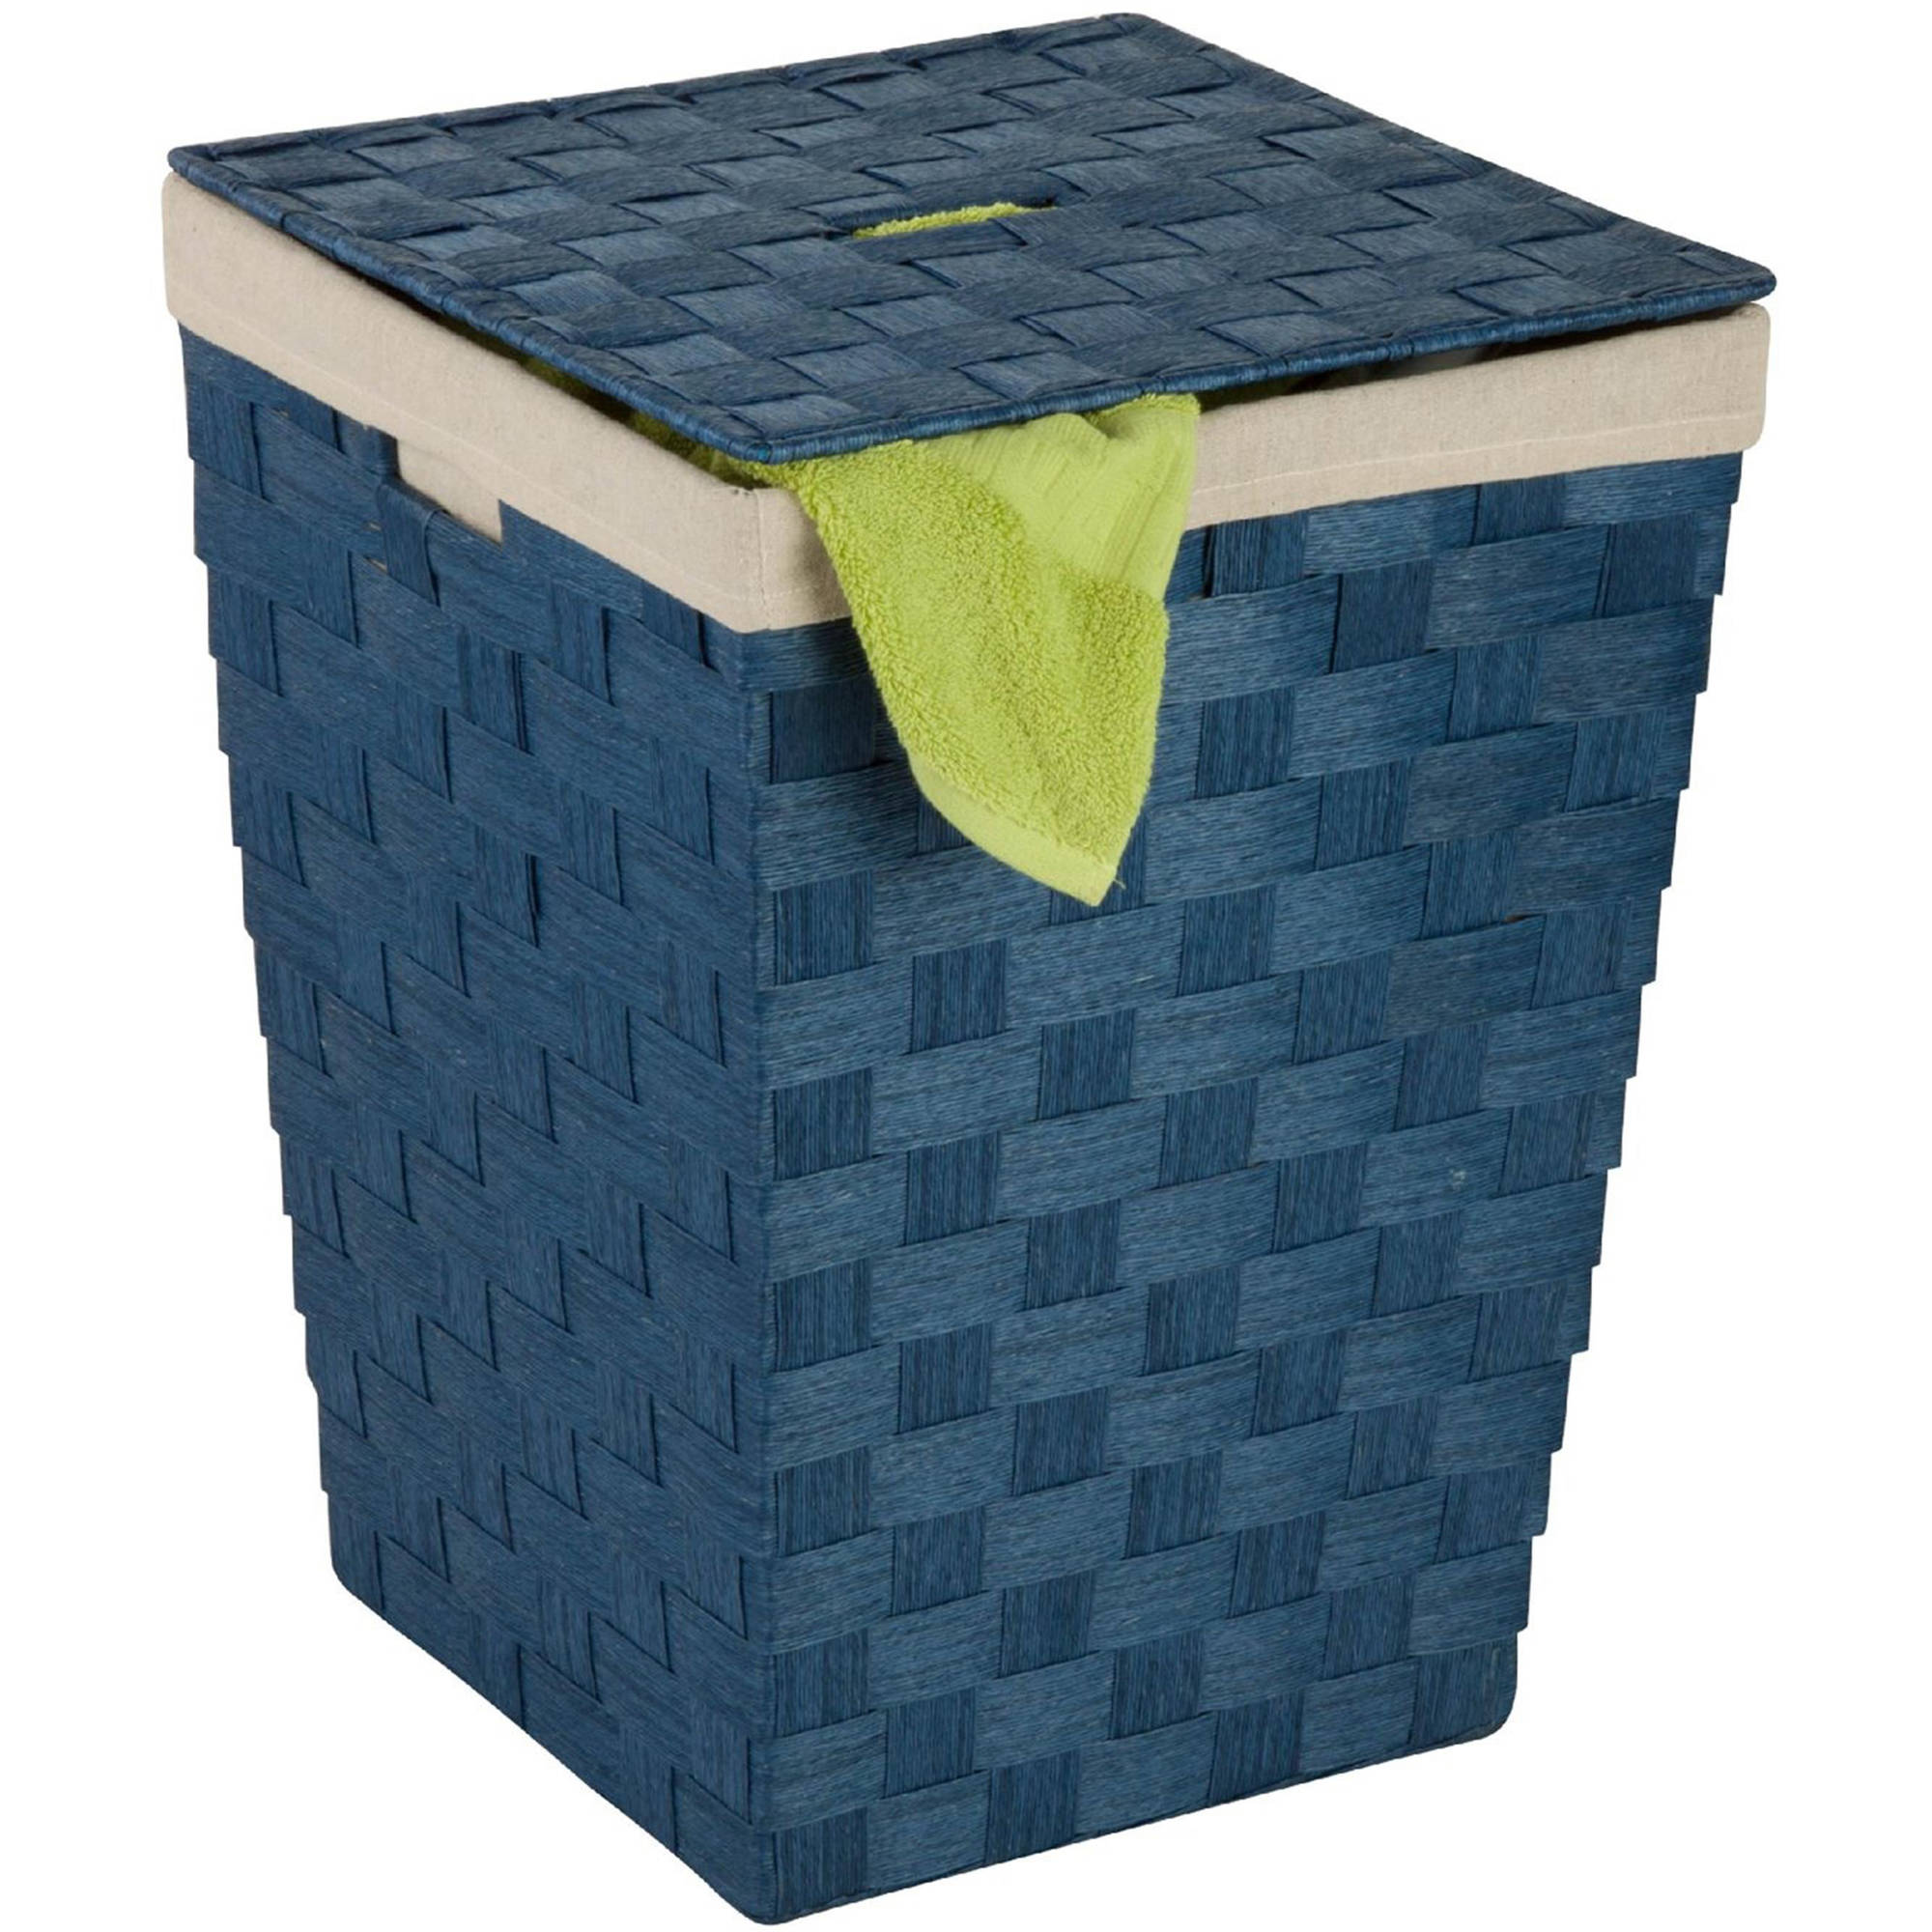 Honey-Can-Do Woven Laundry Hamper with Liner, Multiple Colors